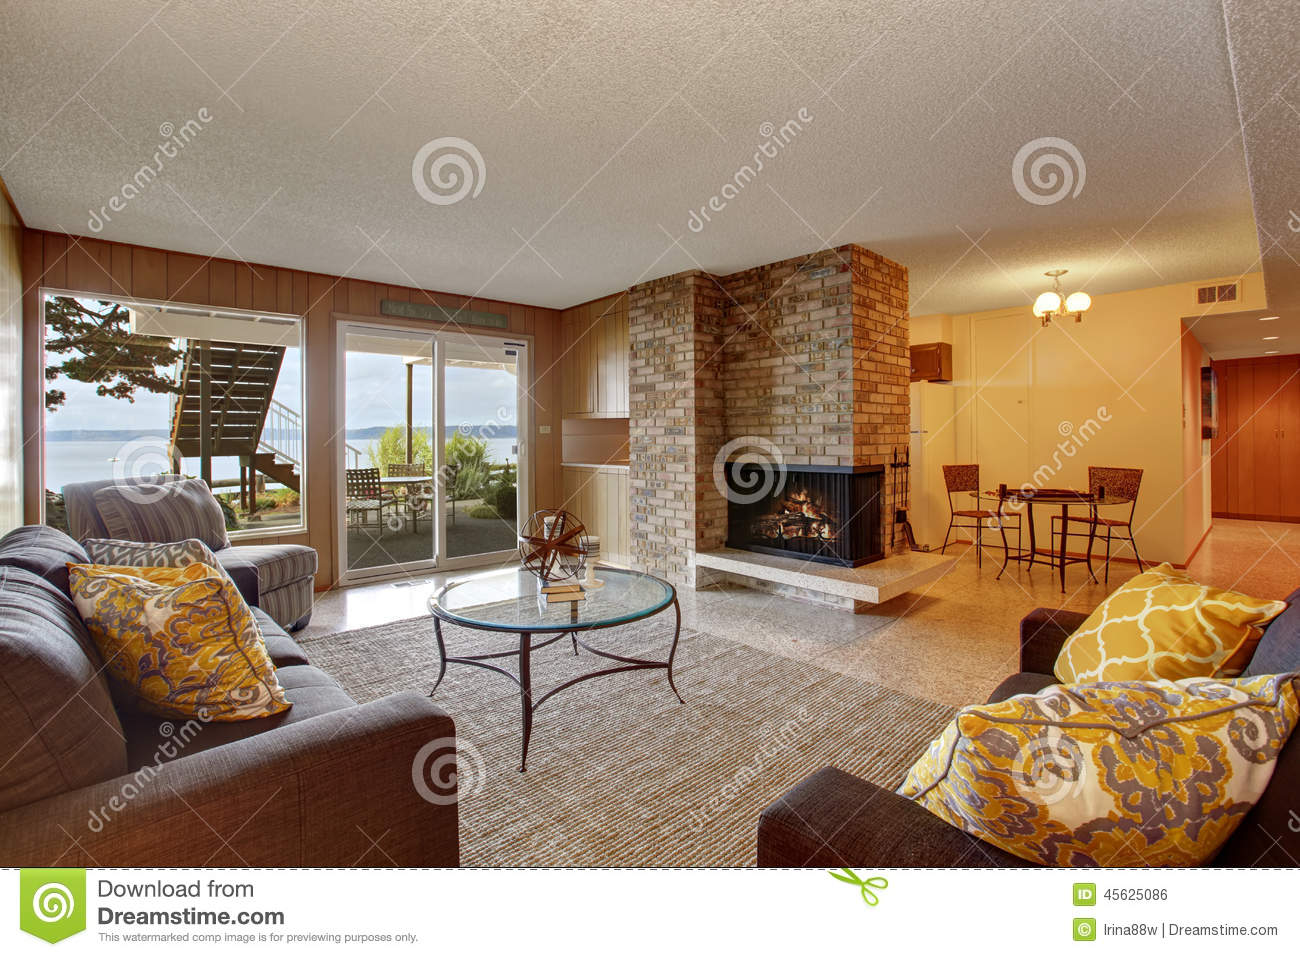 Basement Living Room With Fireplace And Walkout Patio ...